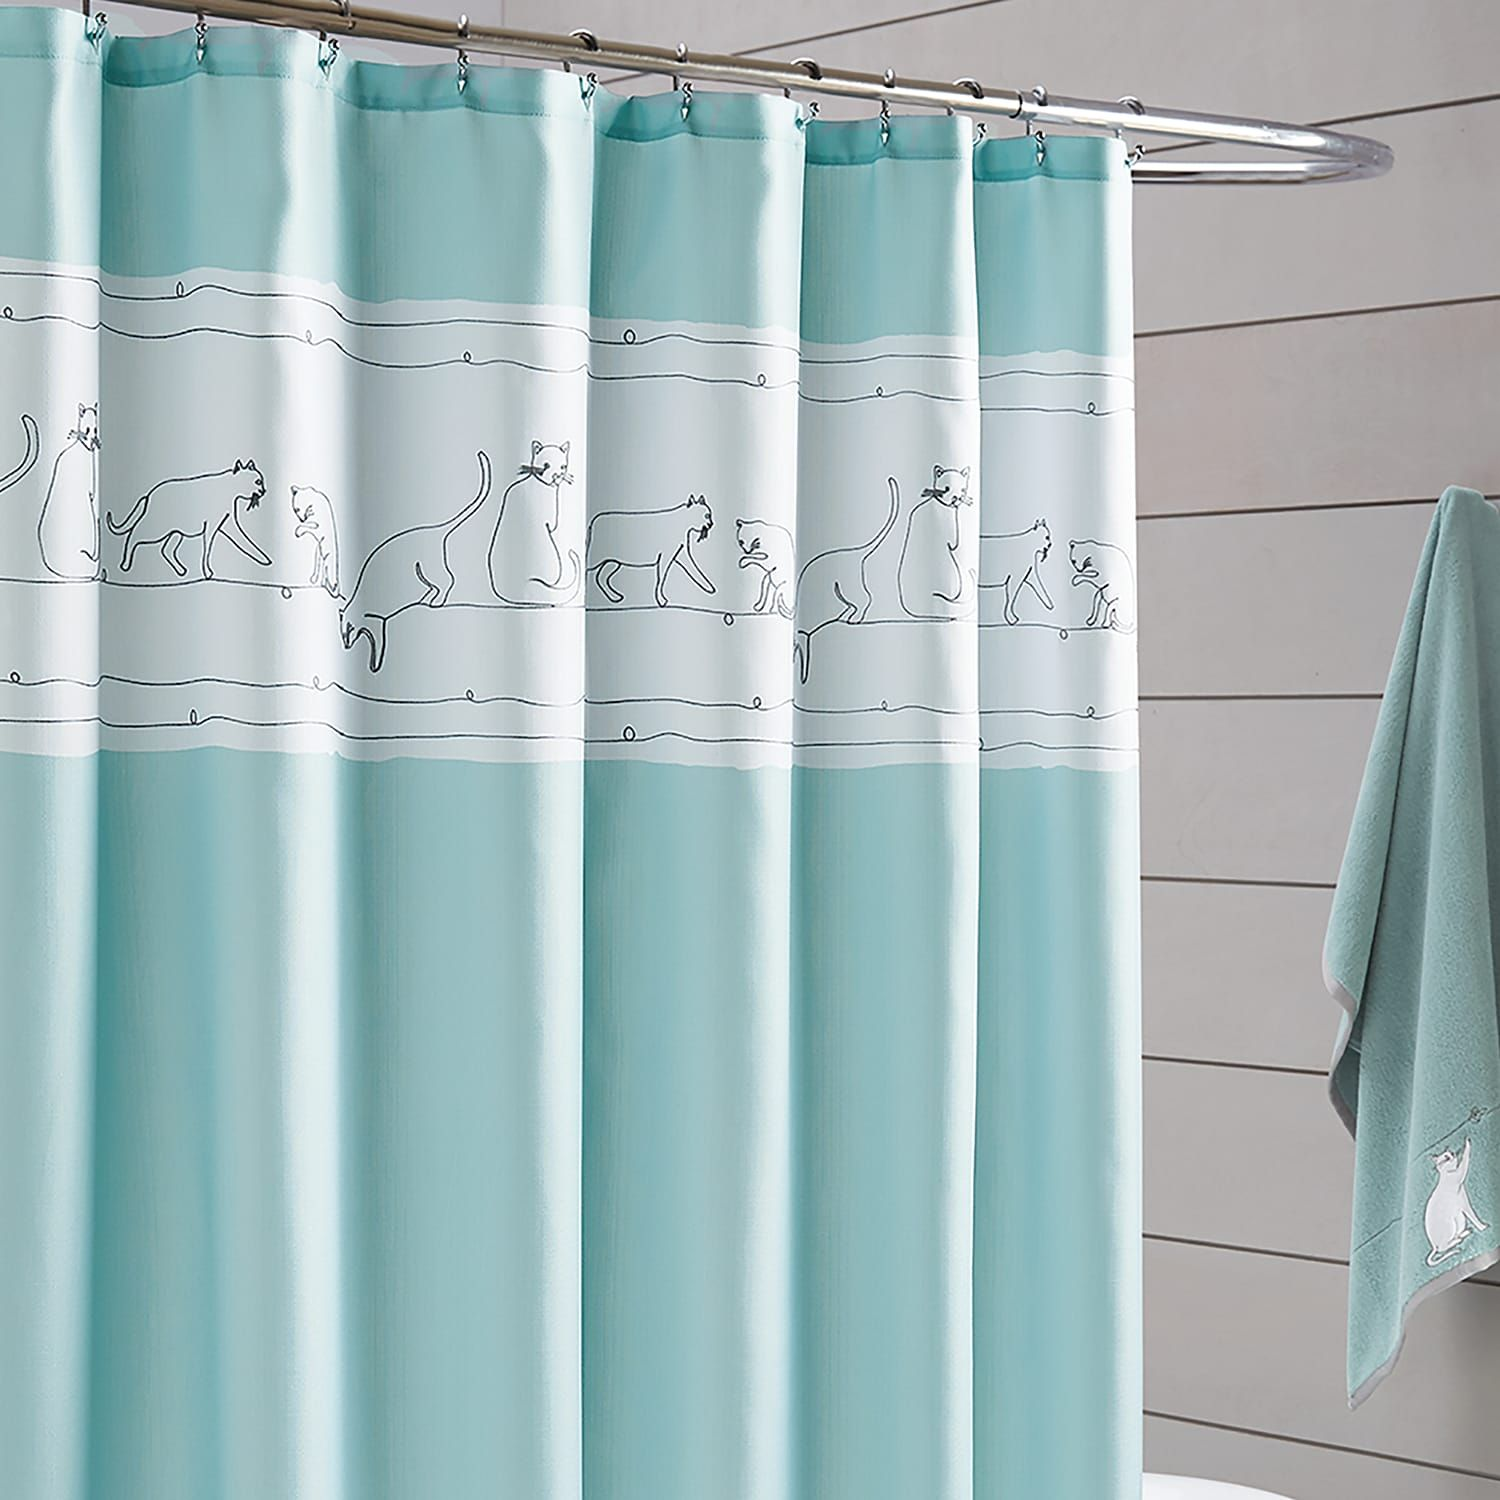 One Home Embroidered Kitty Cat Shower Curtain Kitty Embroidered